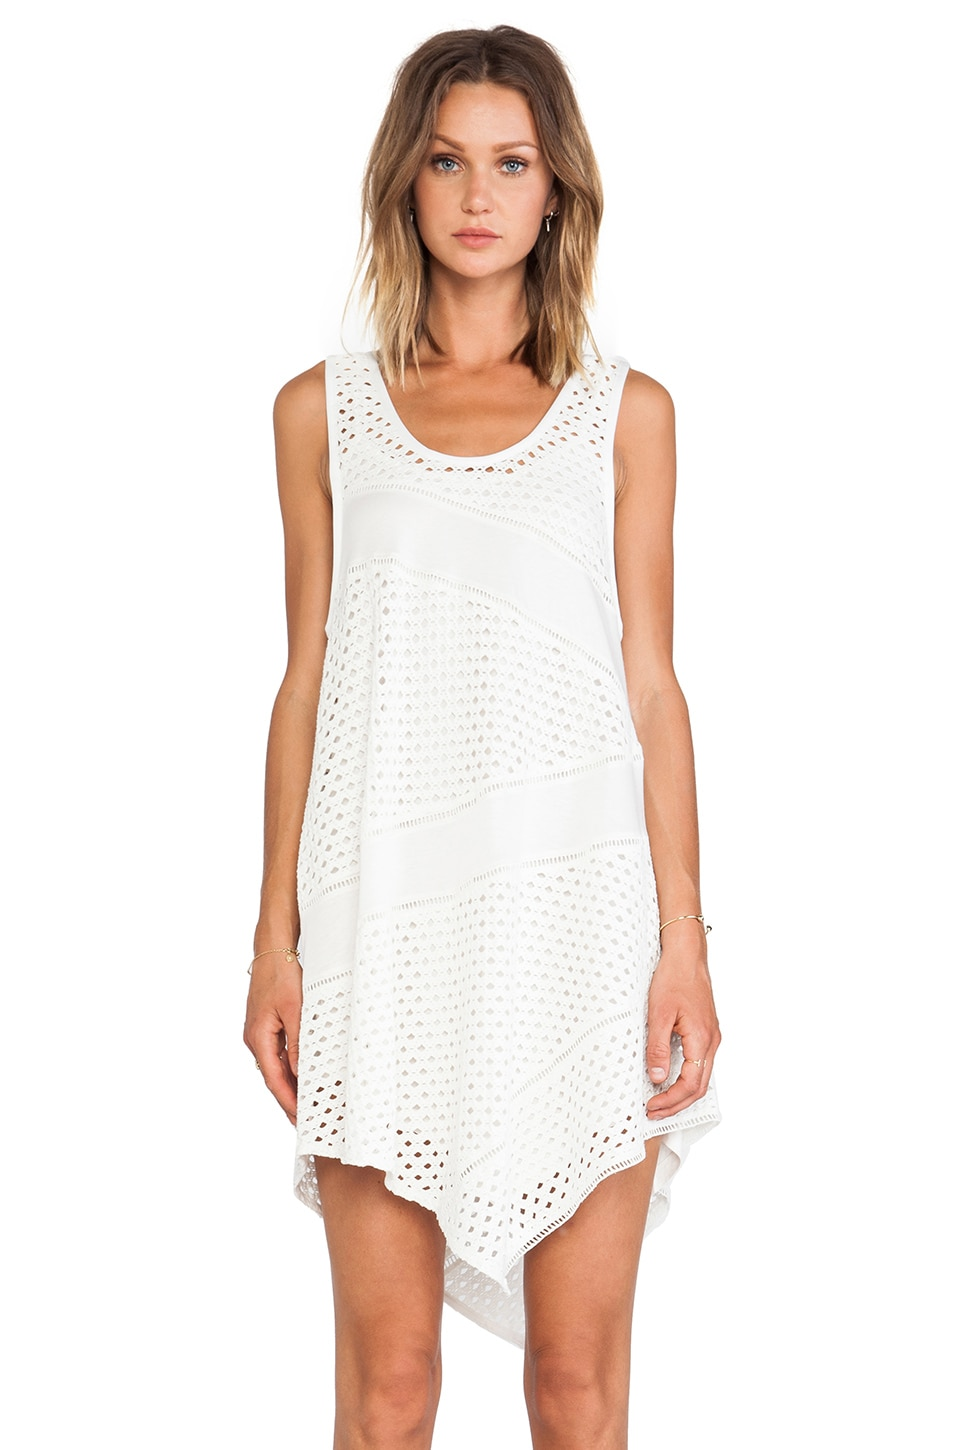 Marc by Marc Jacobs Yuki Eyelet Jersey Dress in Egret